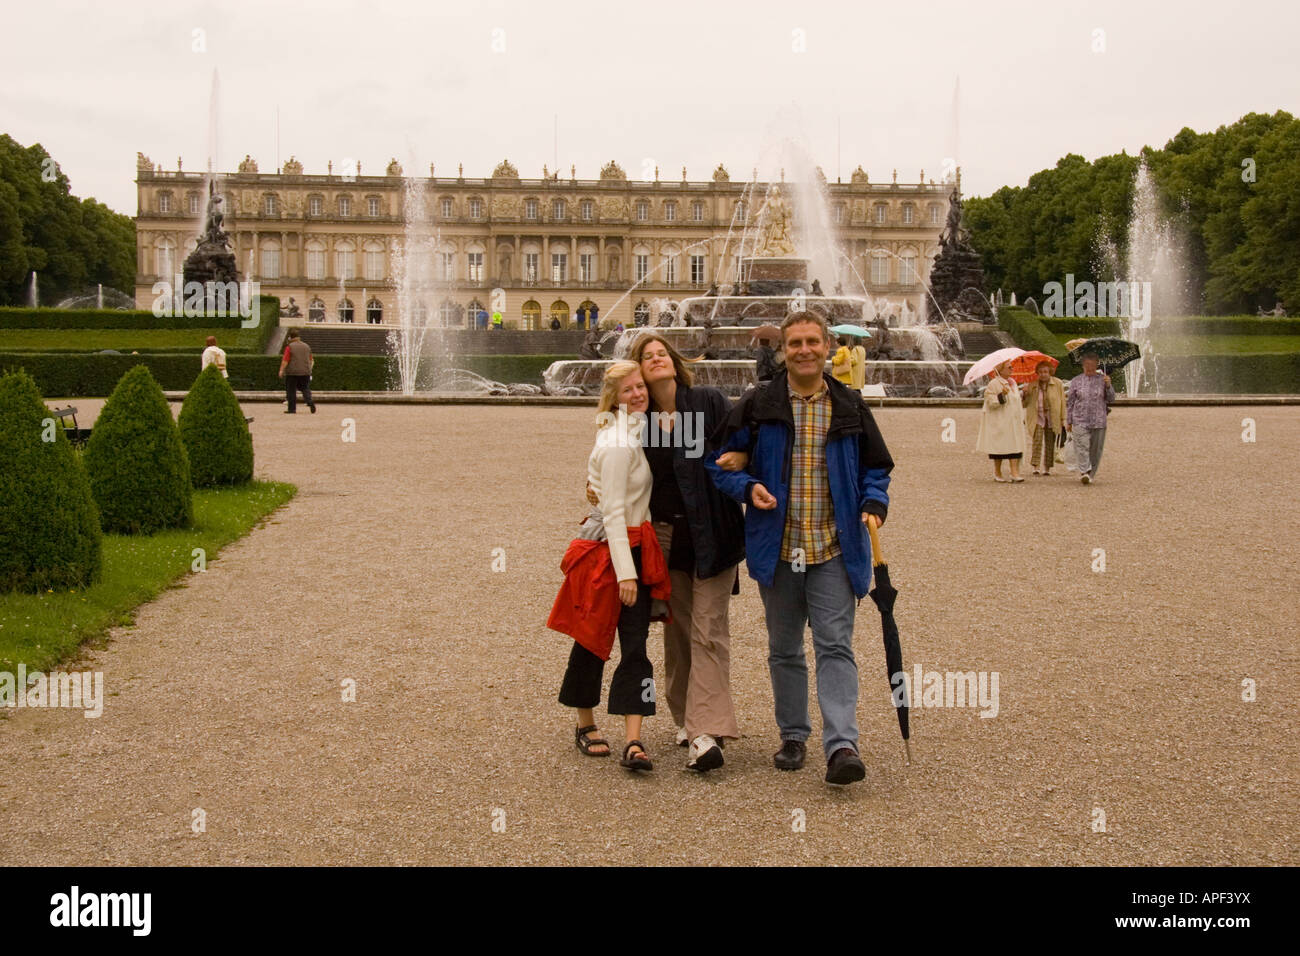 Tourists stand in front of a palace. - Stock Image